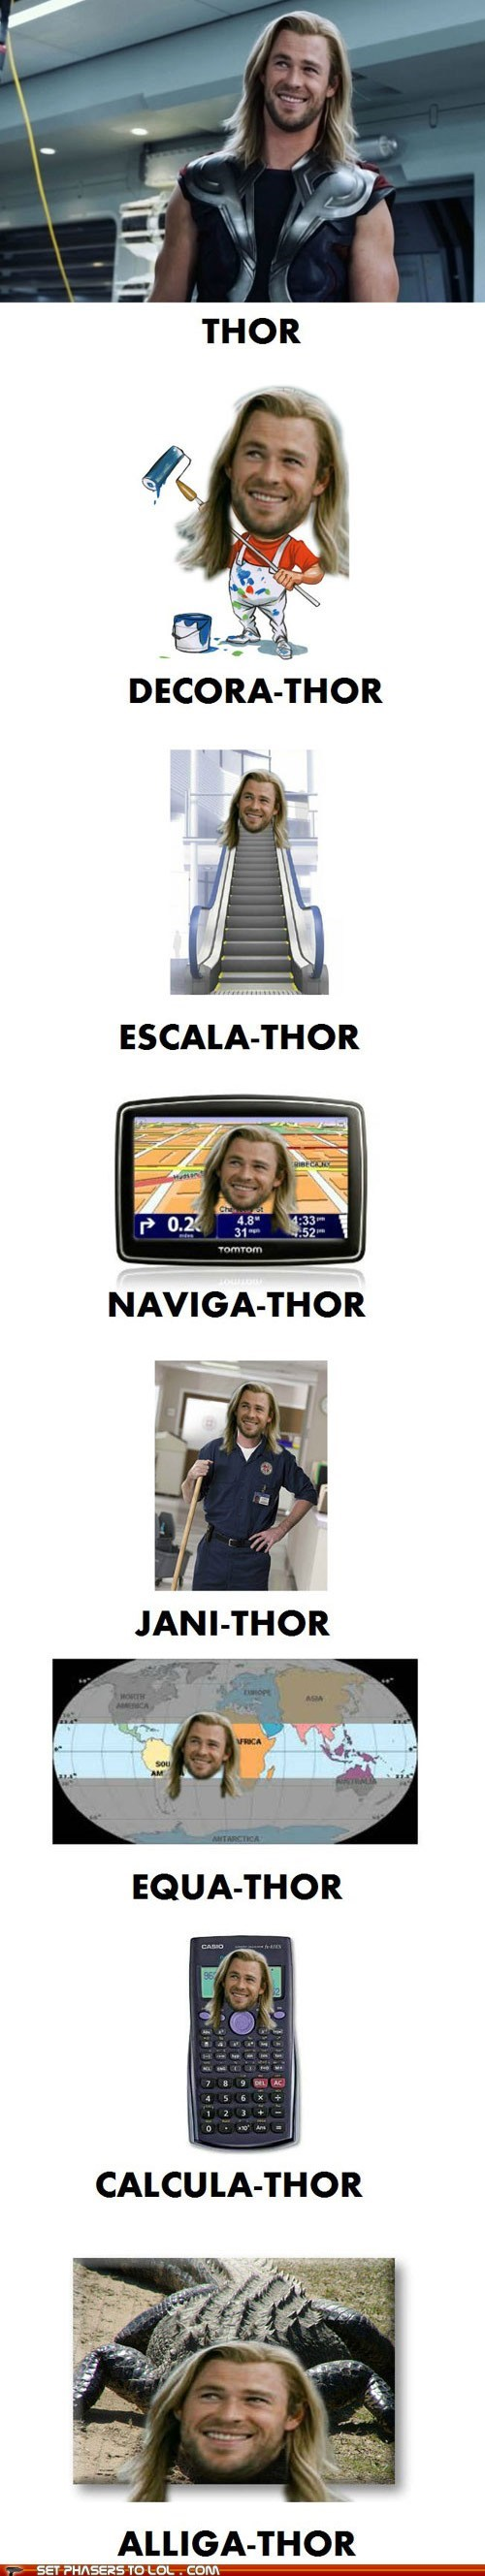 Set Phasers to LOL: Thor's Many Jobs